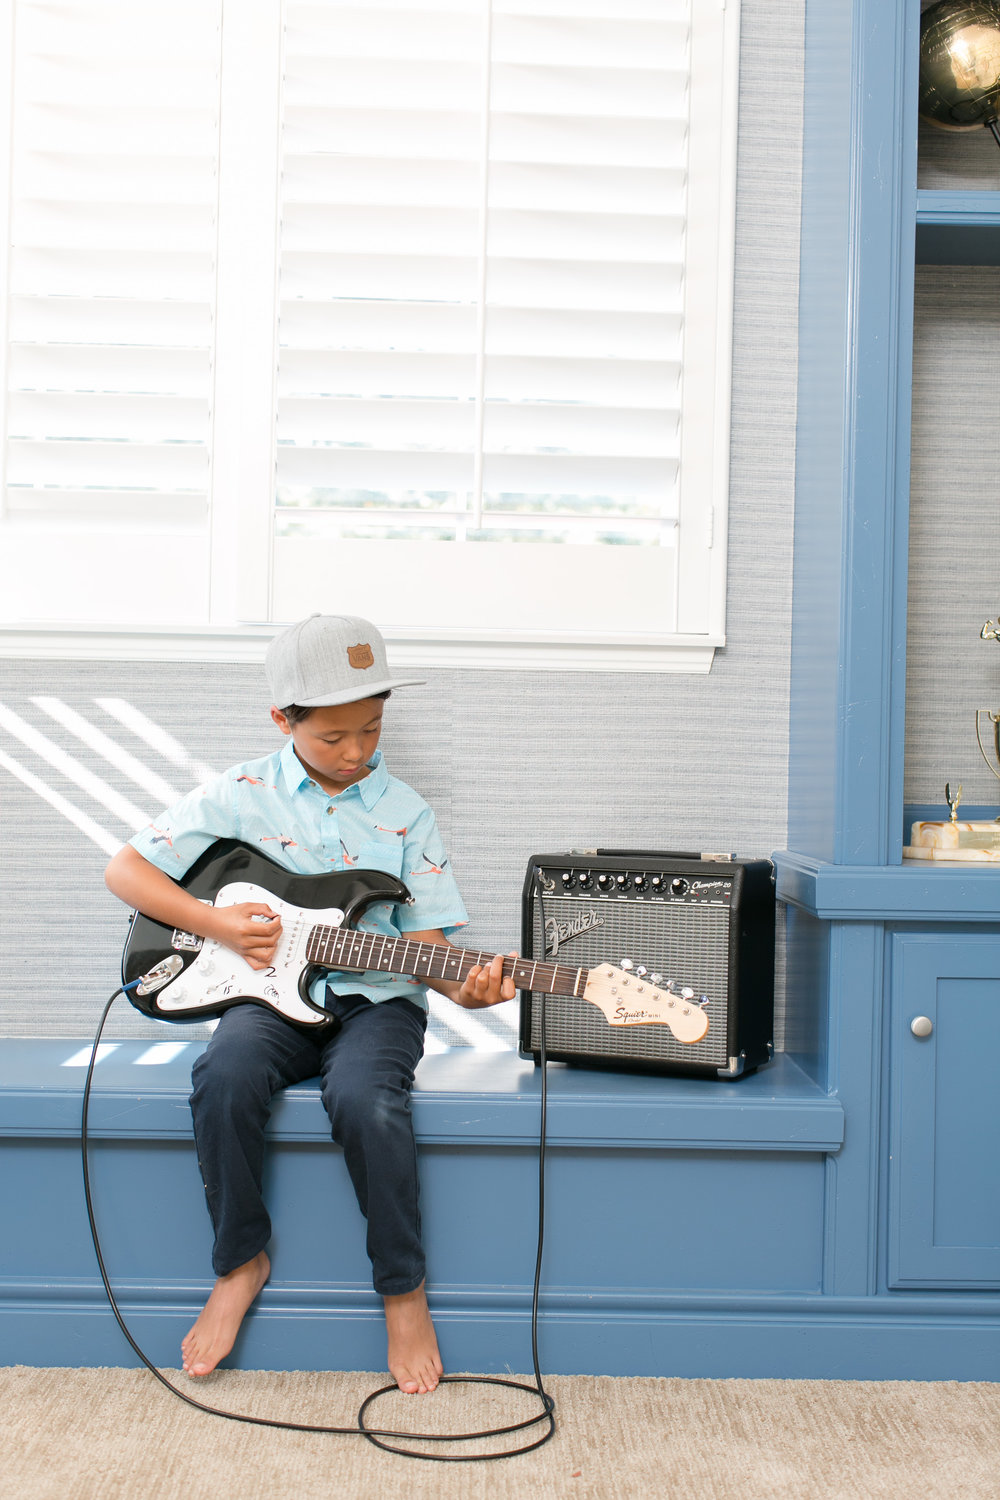 When he is not riding dirt bikes, skating or surfing, this kid is trying his hand at jamming on the guitar.